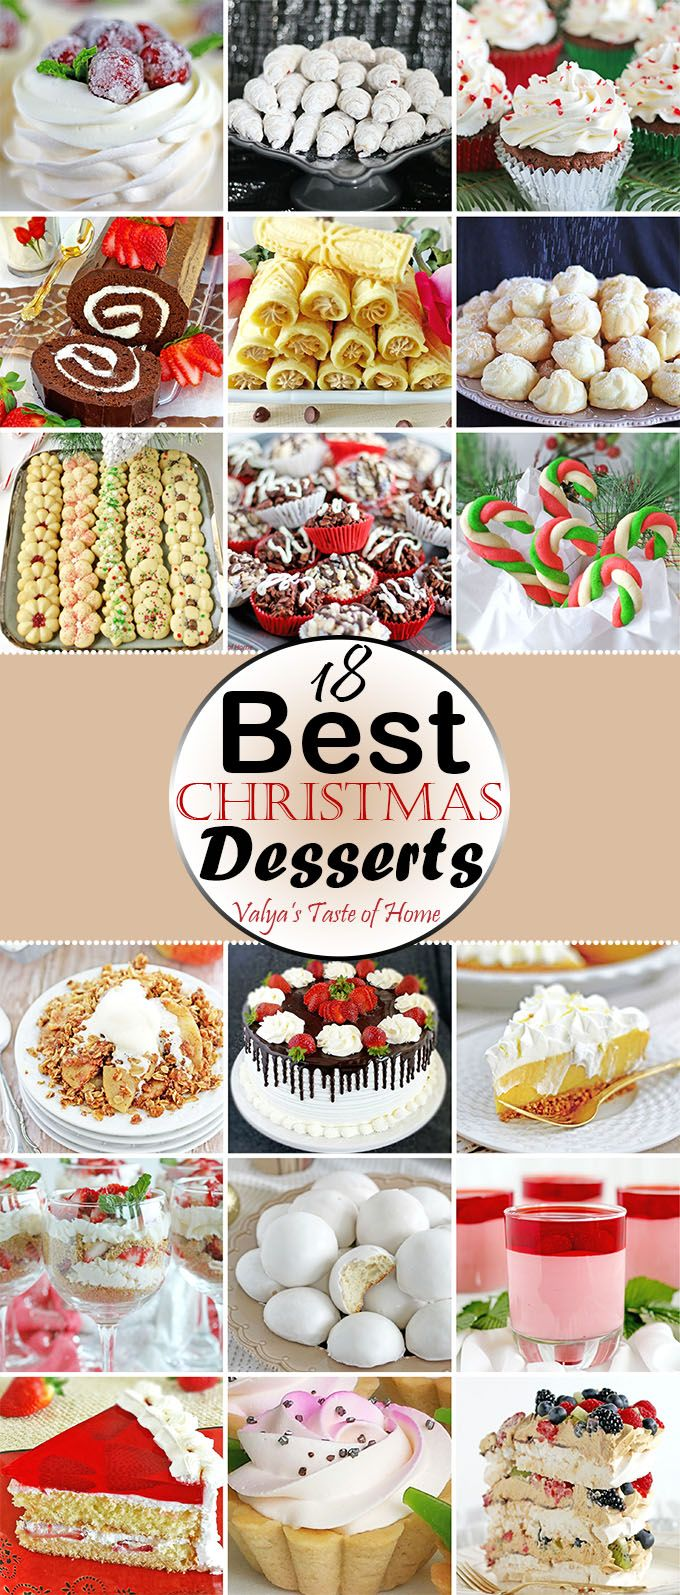 In today's post you will find a variety of different recipes pieced together to help ease your Christmas cooking and baking prep anxiety. I am a planner. My Christmas menu is planned, and shopping list is ready. I like to plan ahead the recipes I'll be making and do my grocery shopping in plenty of time ahead too.